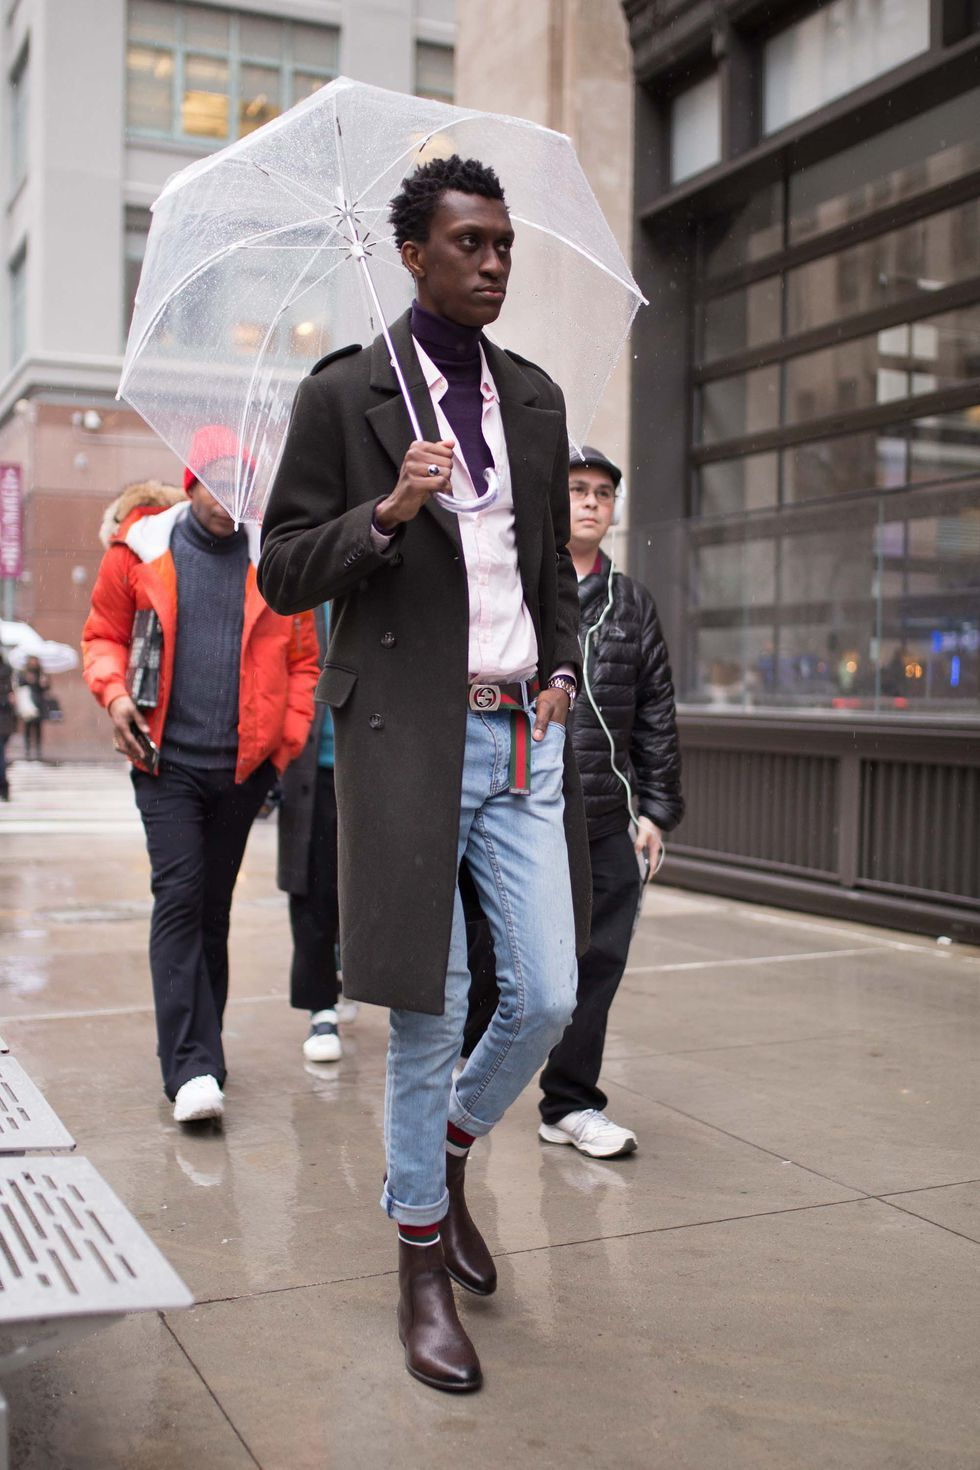 Forum on this topic: MORE: The Best Street Style From NYFW, more-the-best-street-style-from-nyfw/